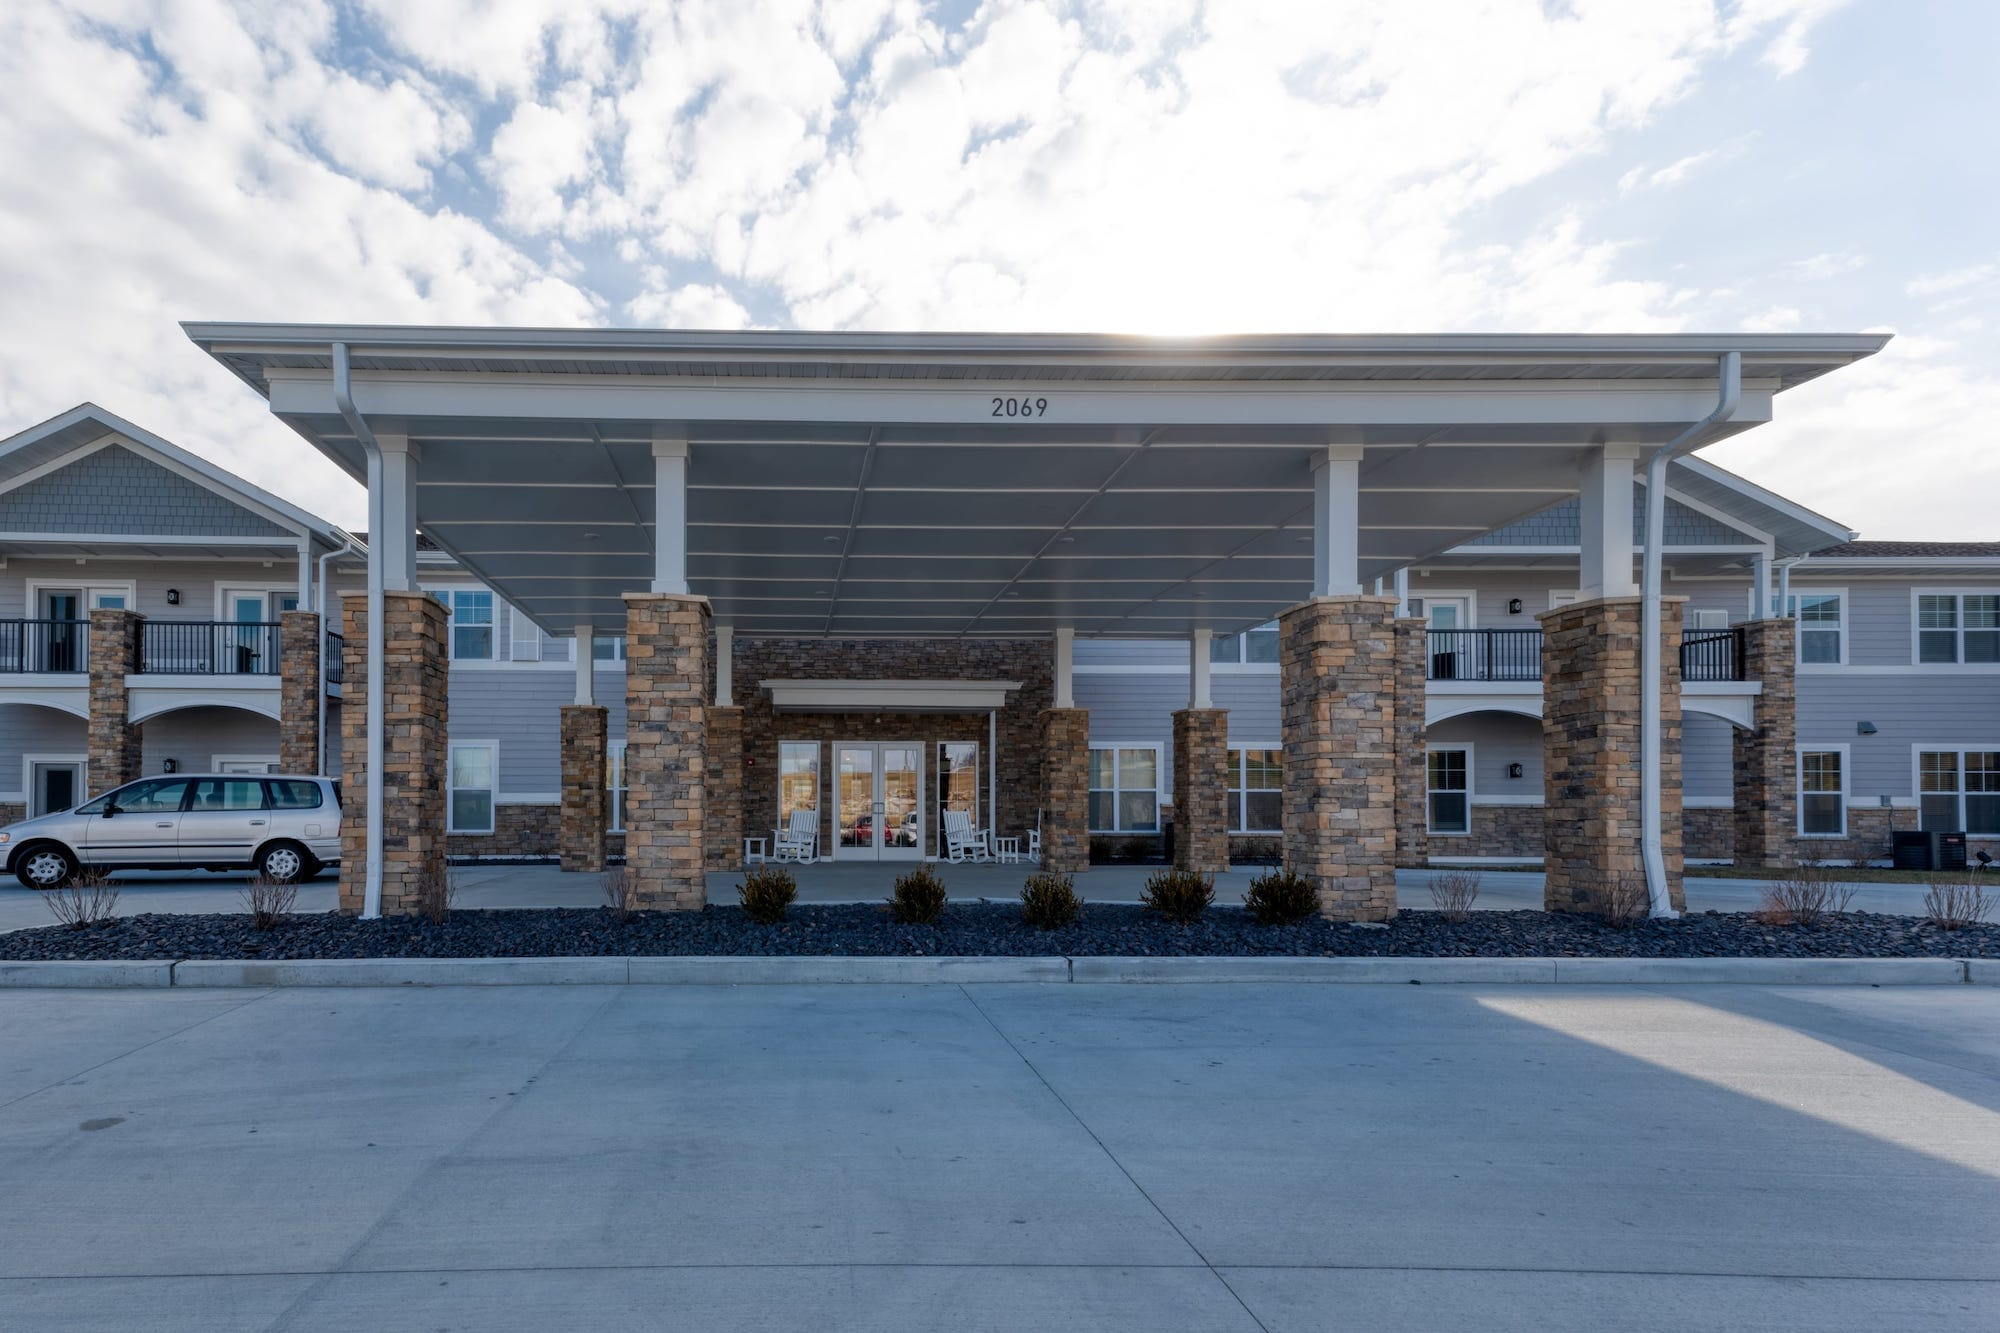 Community entrance featuring drive-up access for residents and guests